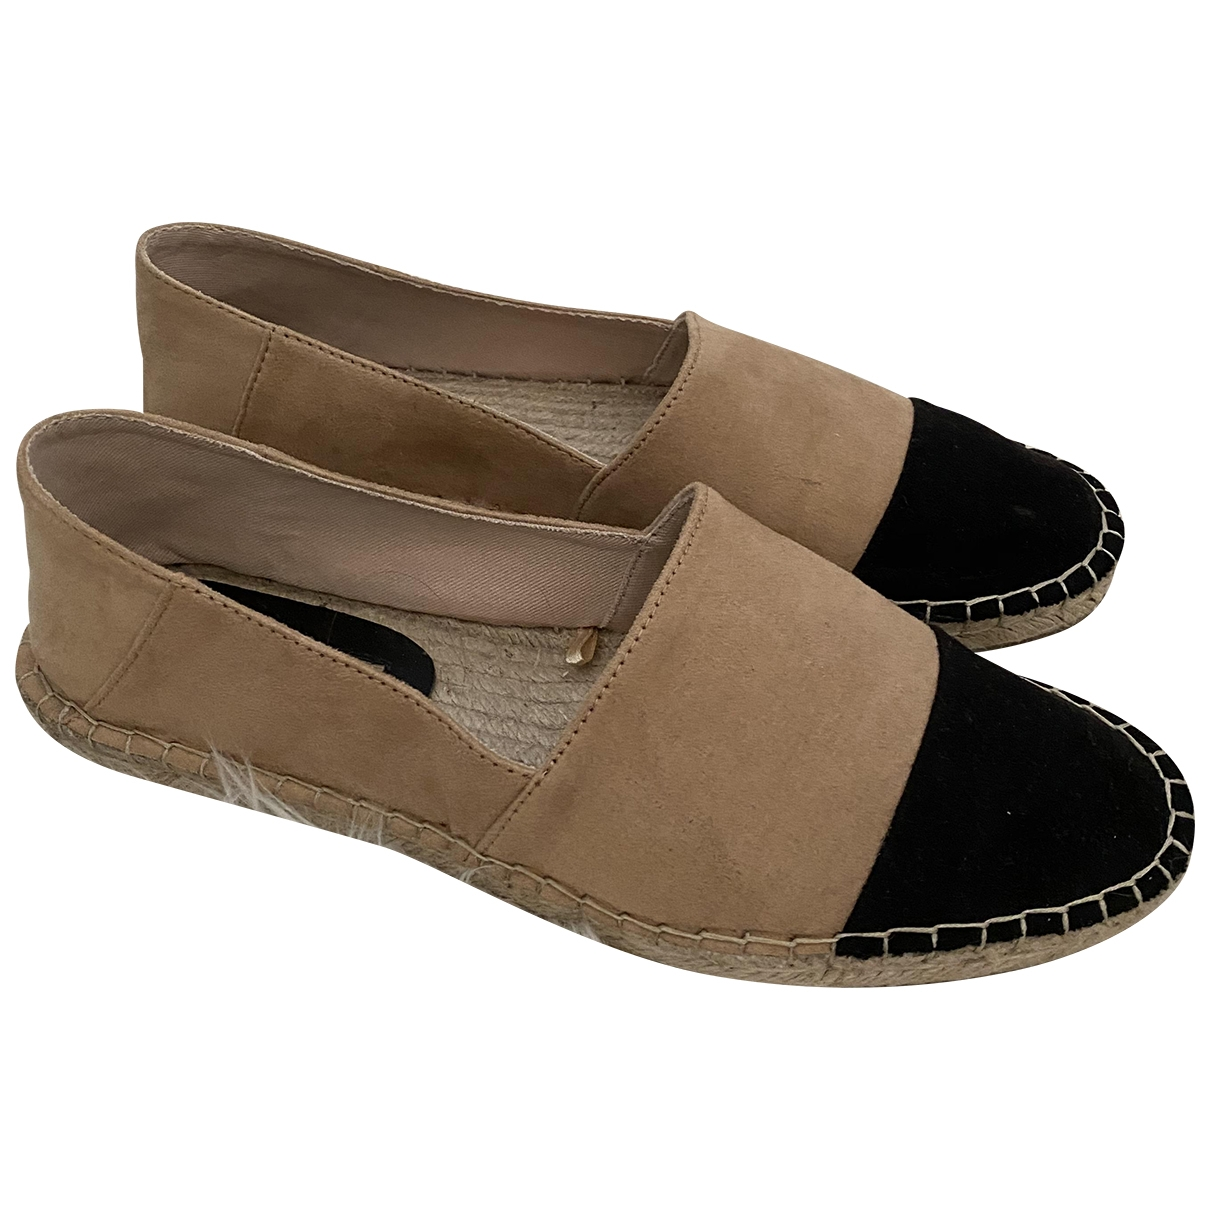 Zara \N Espadrilles in  Beige Synthetik